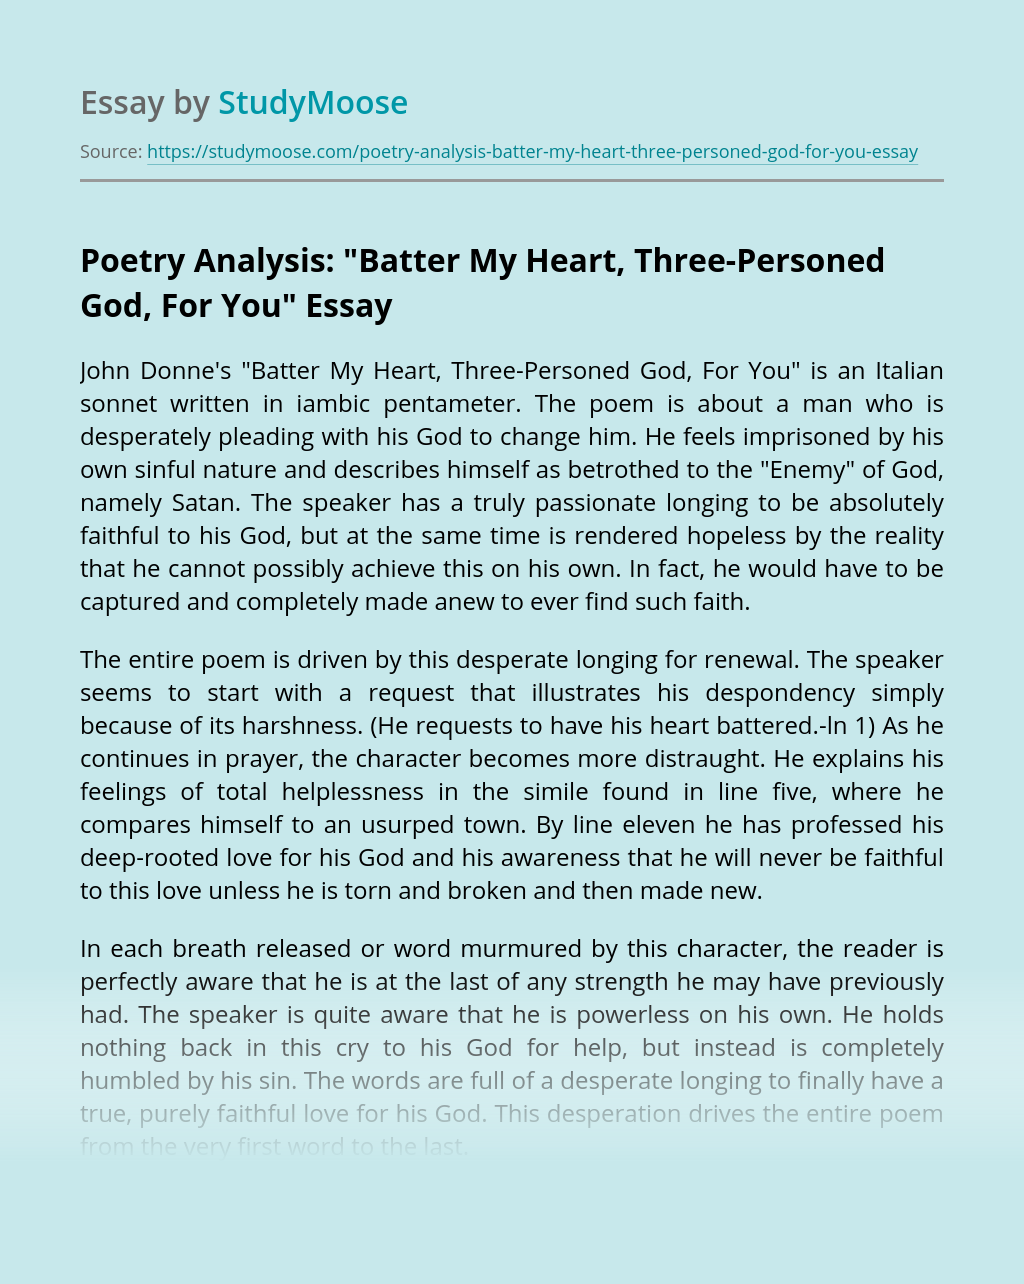 """Poetry Analysis: """"Batter My Heart, Three-Personed God, For You"""""""